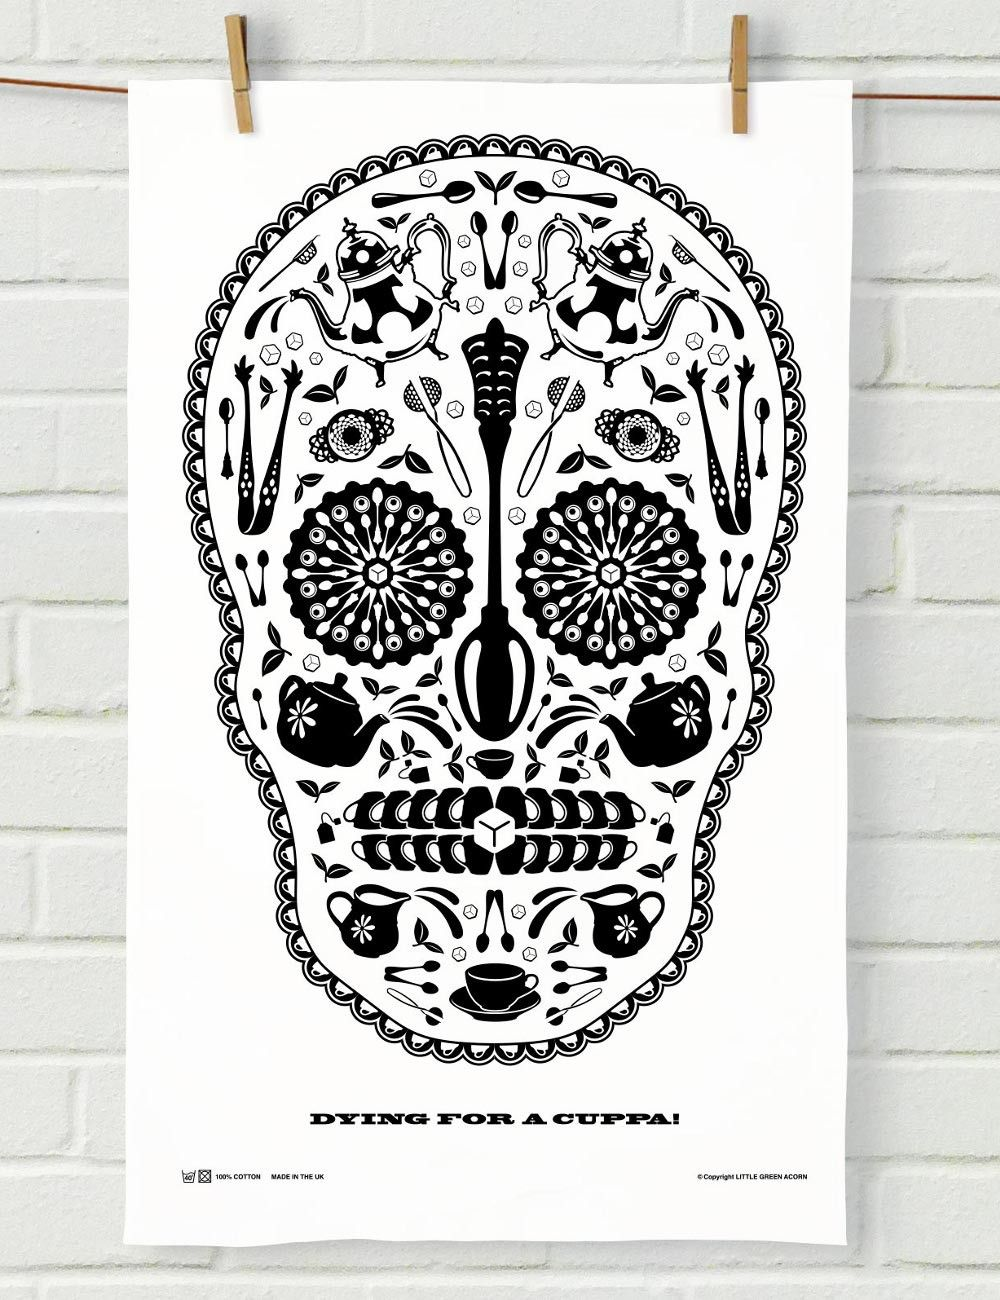 Sugar Skull Tea Towel in White | Design | Pinterest | Towels and ...